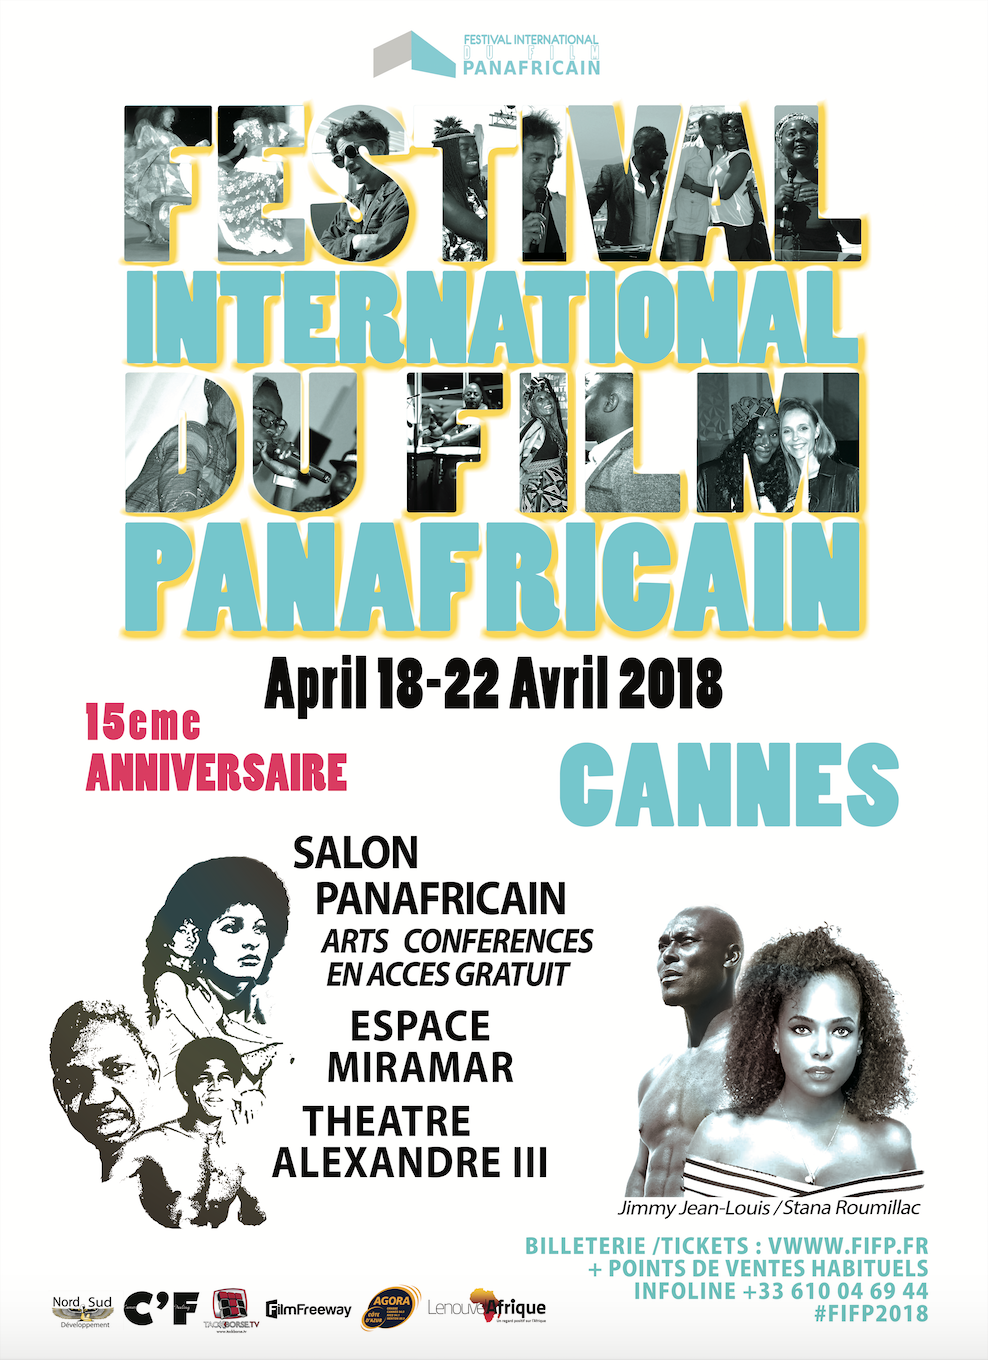 http://fifp.fr/wp-content/uploads/2018/03/Affiche-Officielle-Festival-Film-International-Panafricain-2018-FIFP2018